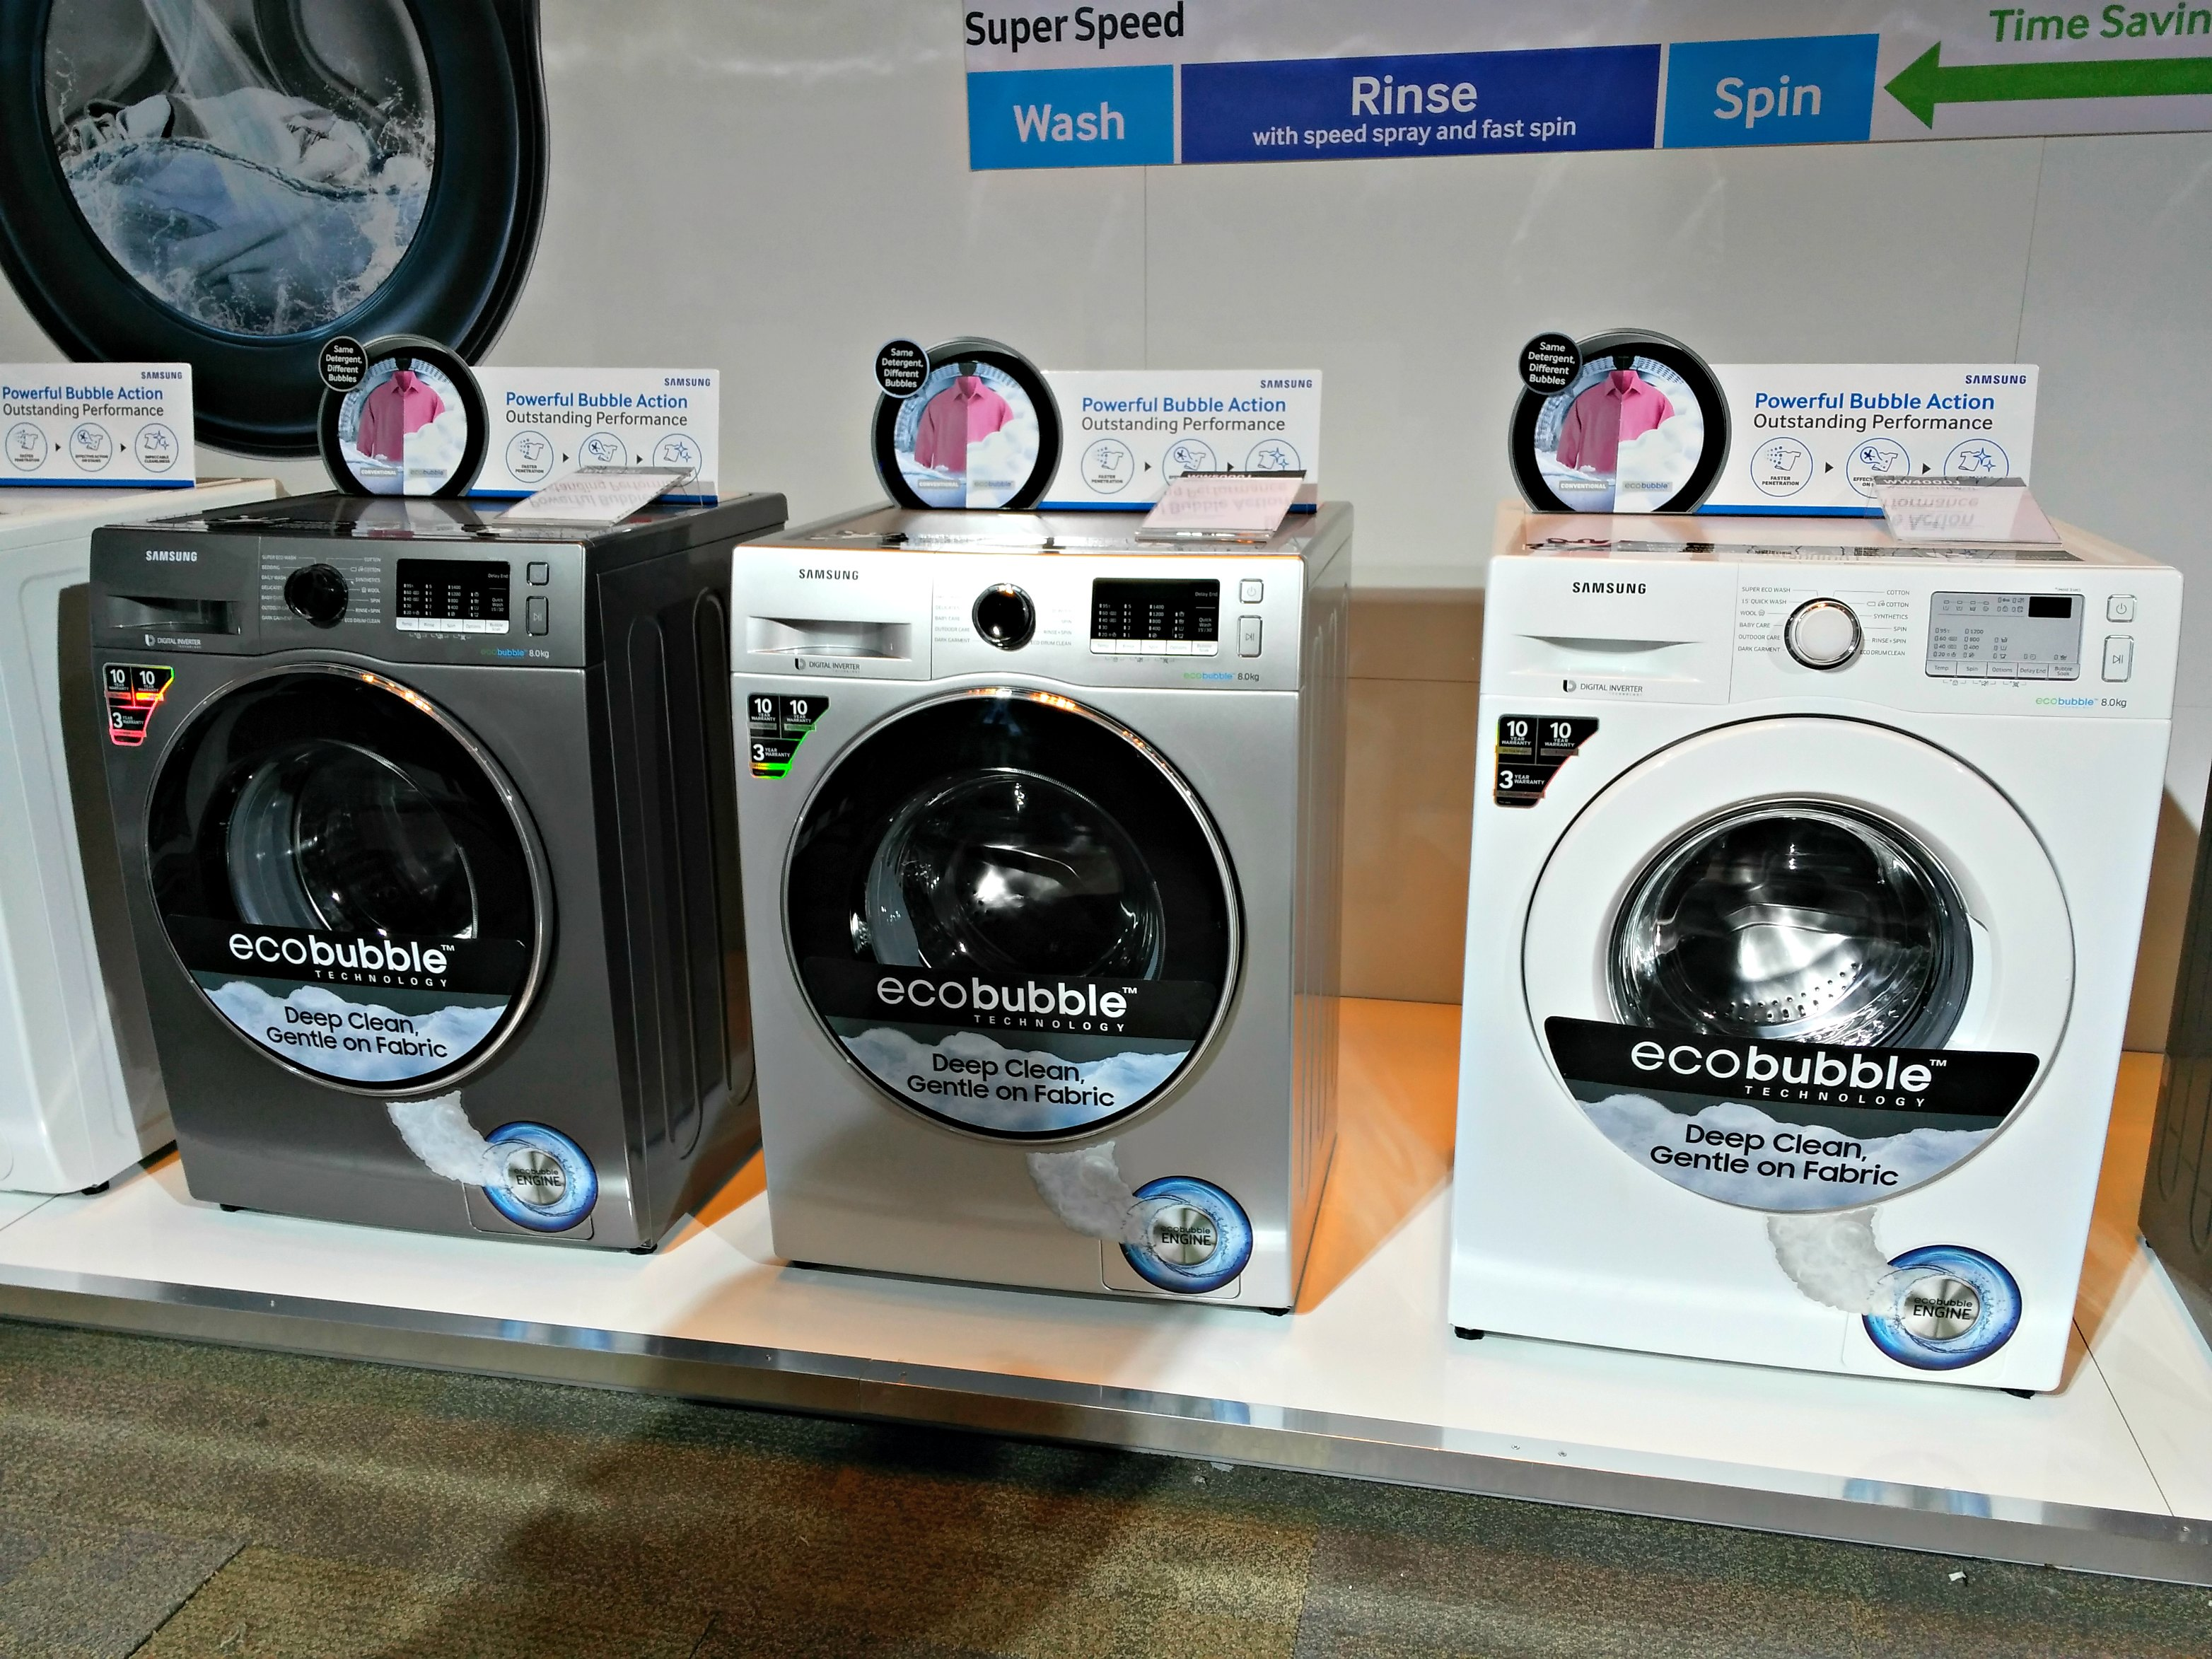 Samsung Washing Machine_3